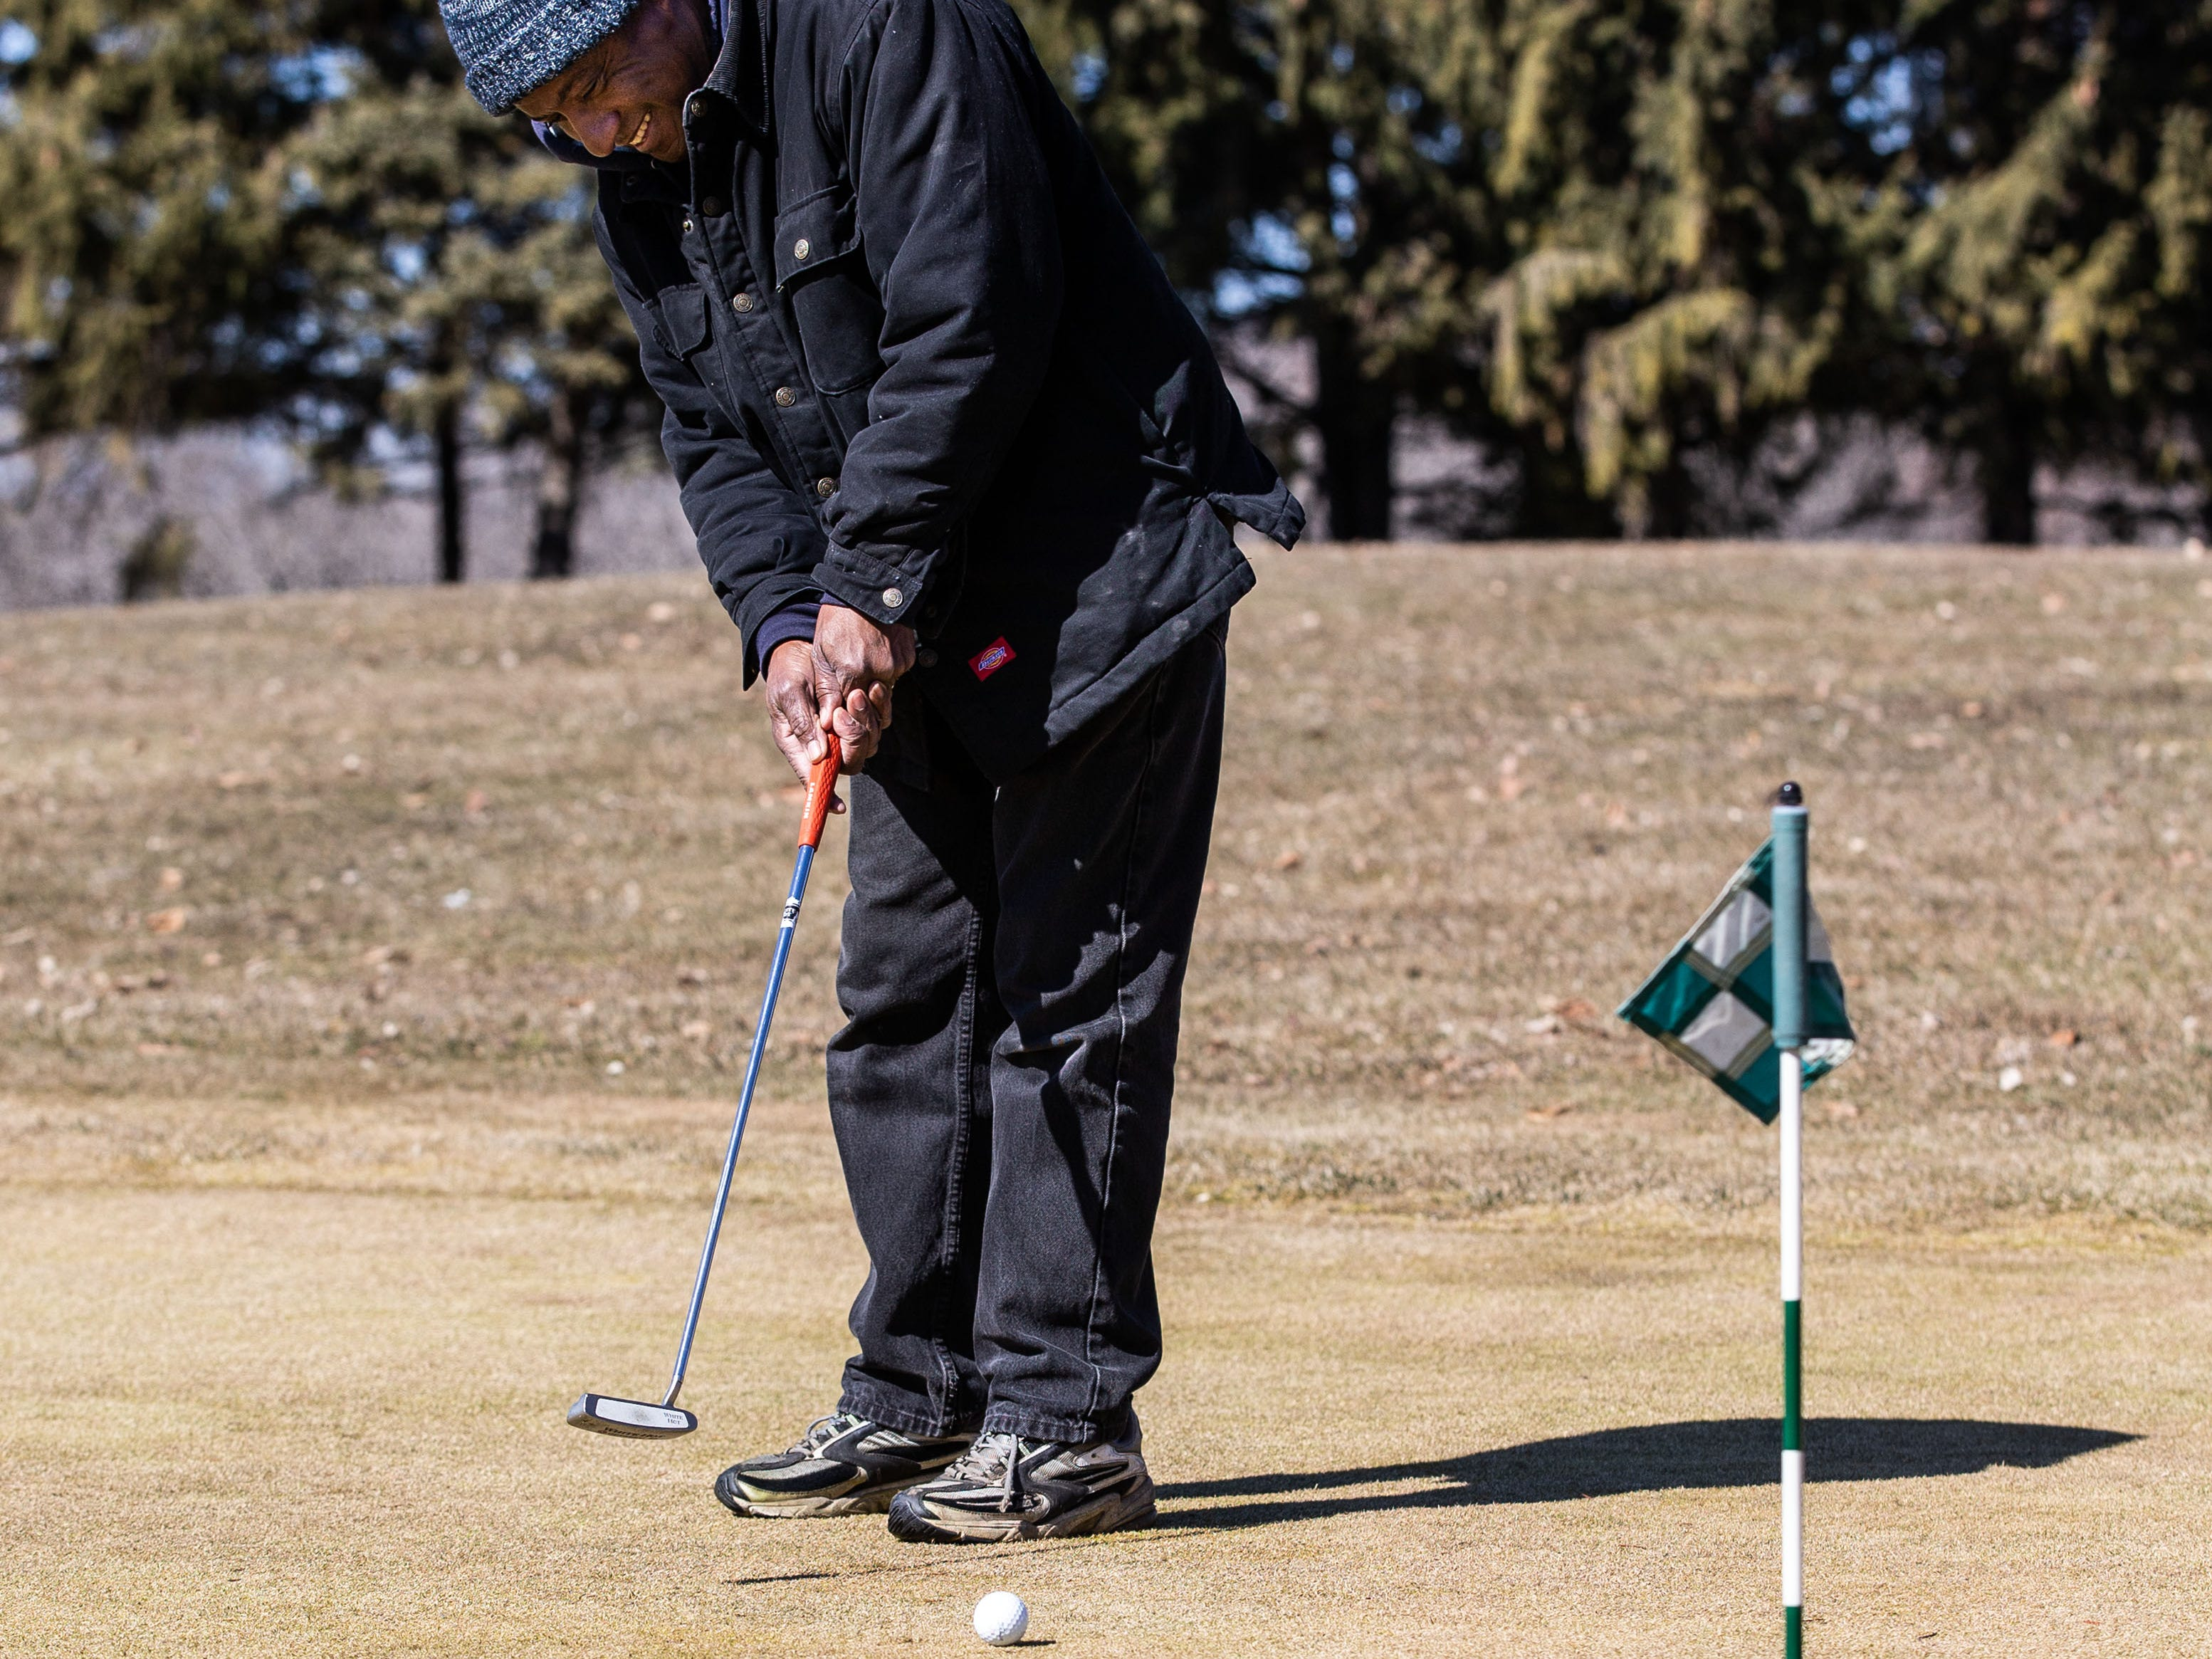 Charles Randolph of Glendale practices putting at Lincoln Park Golf Course in Glendale on Saturday, March 23, 2019. Warm sunny weather lured many enthusiasts outside to enjoy the game.